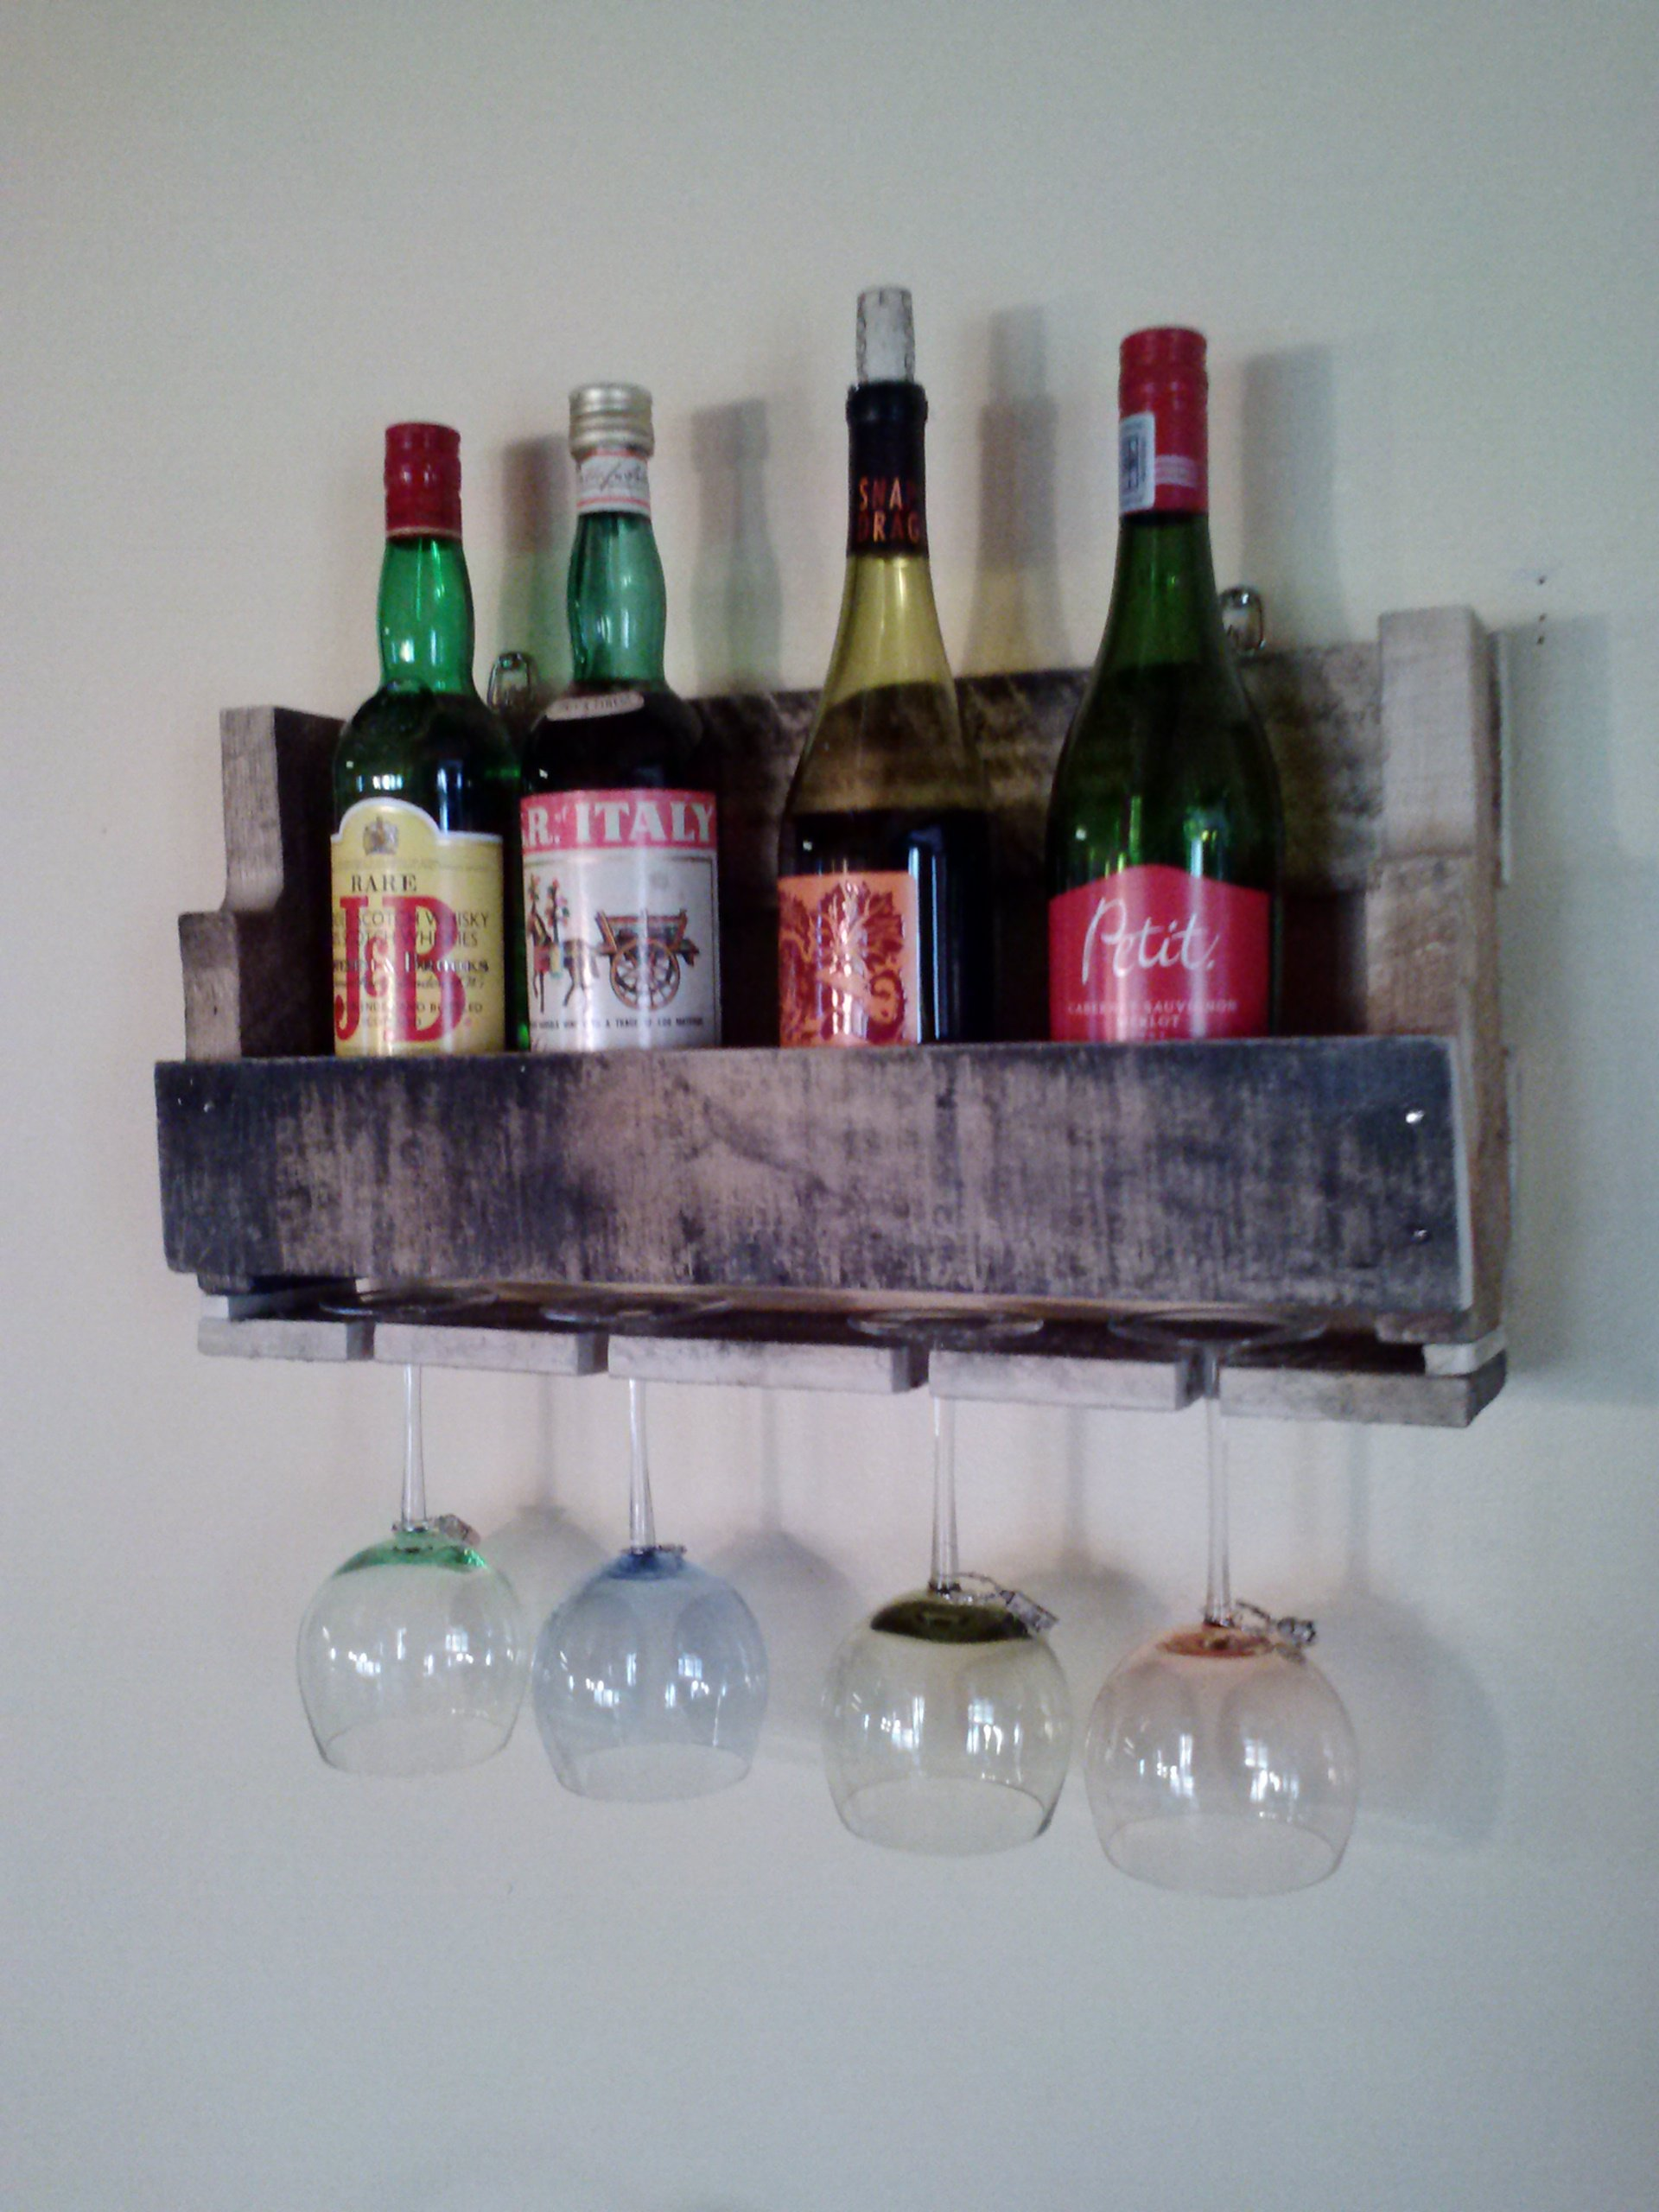 adams jk ideas rack inspiration with best idea decoration trend for design wine in home stunning